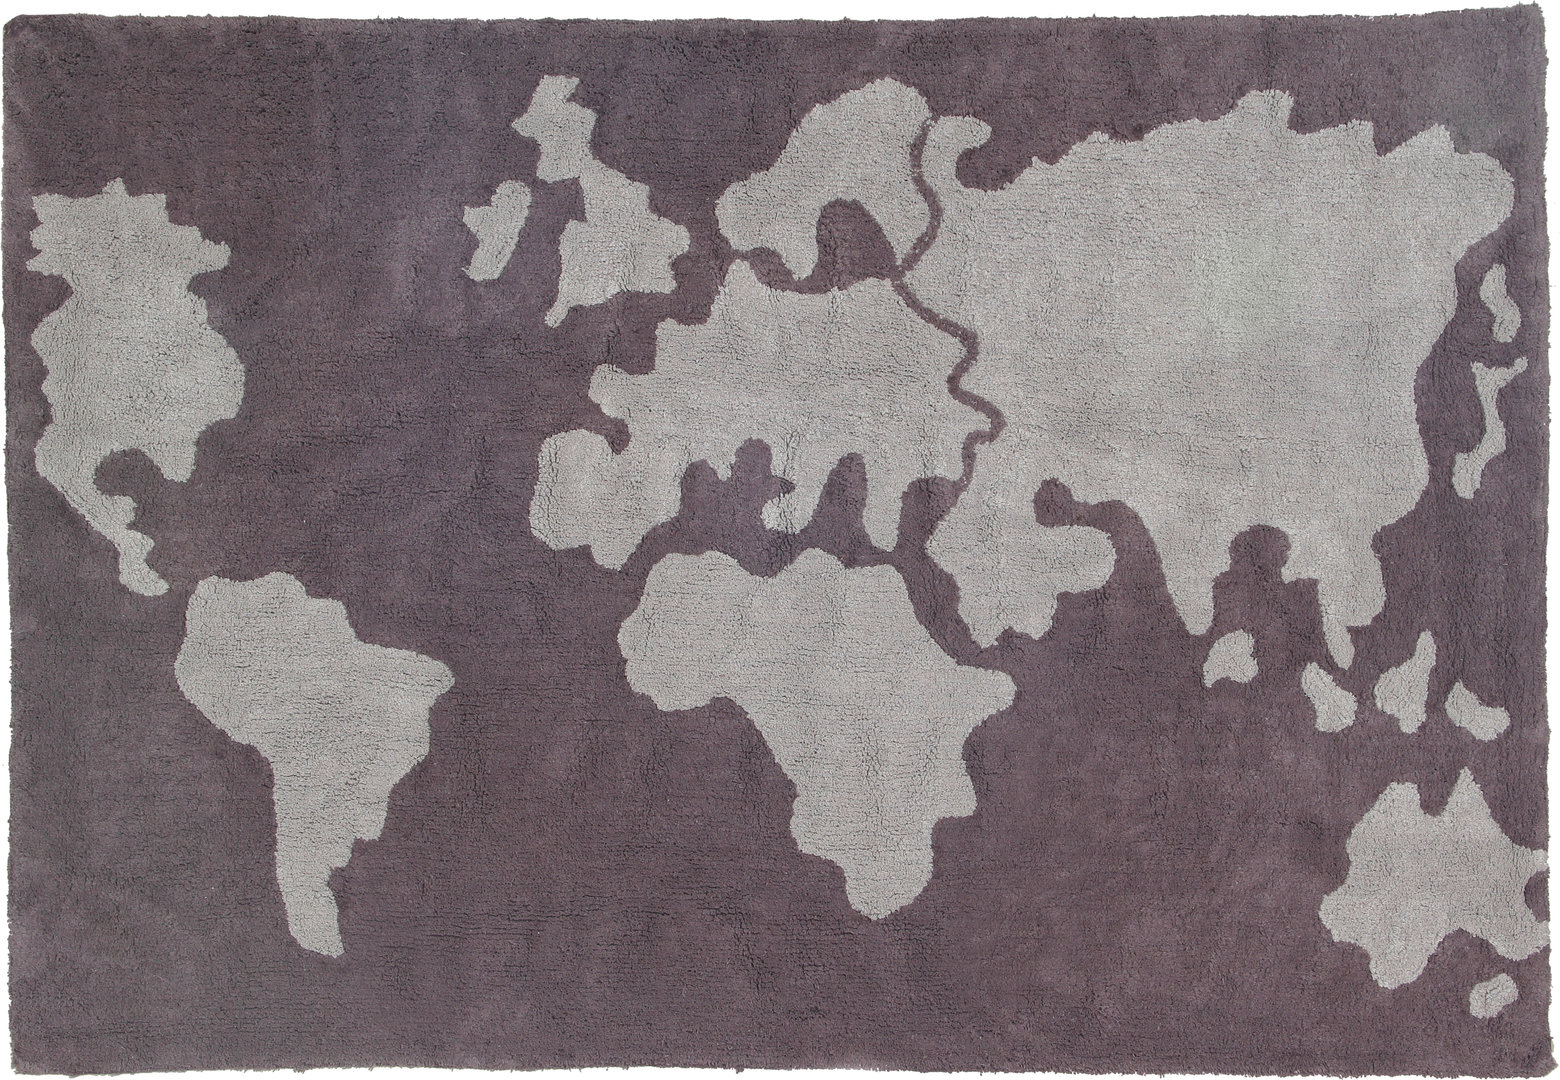 Alfombra Lorena Canals lavable World Map - Enfants et Maison